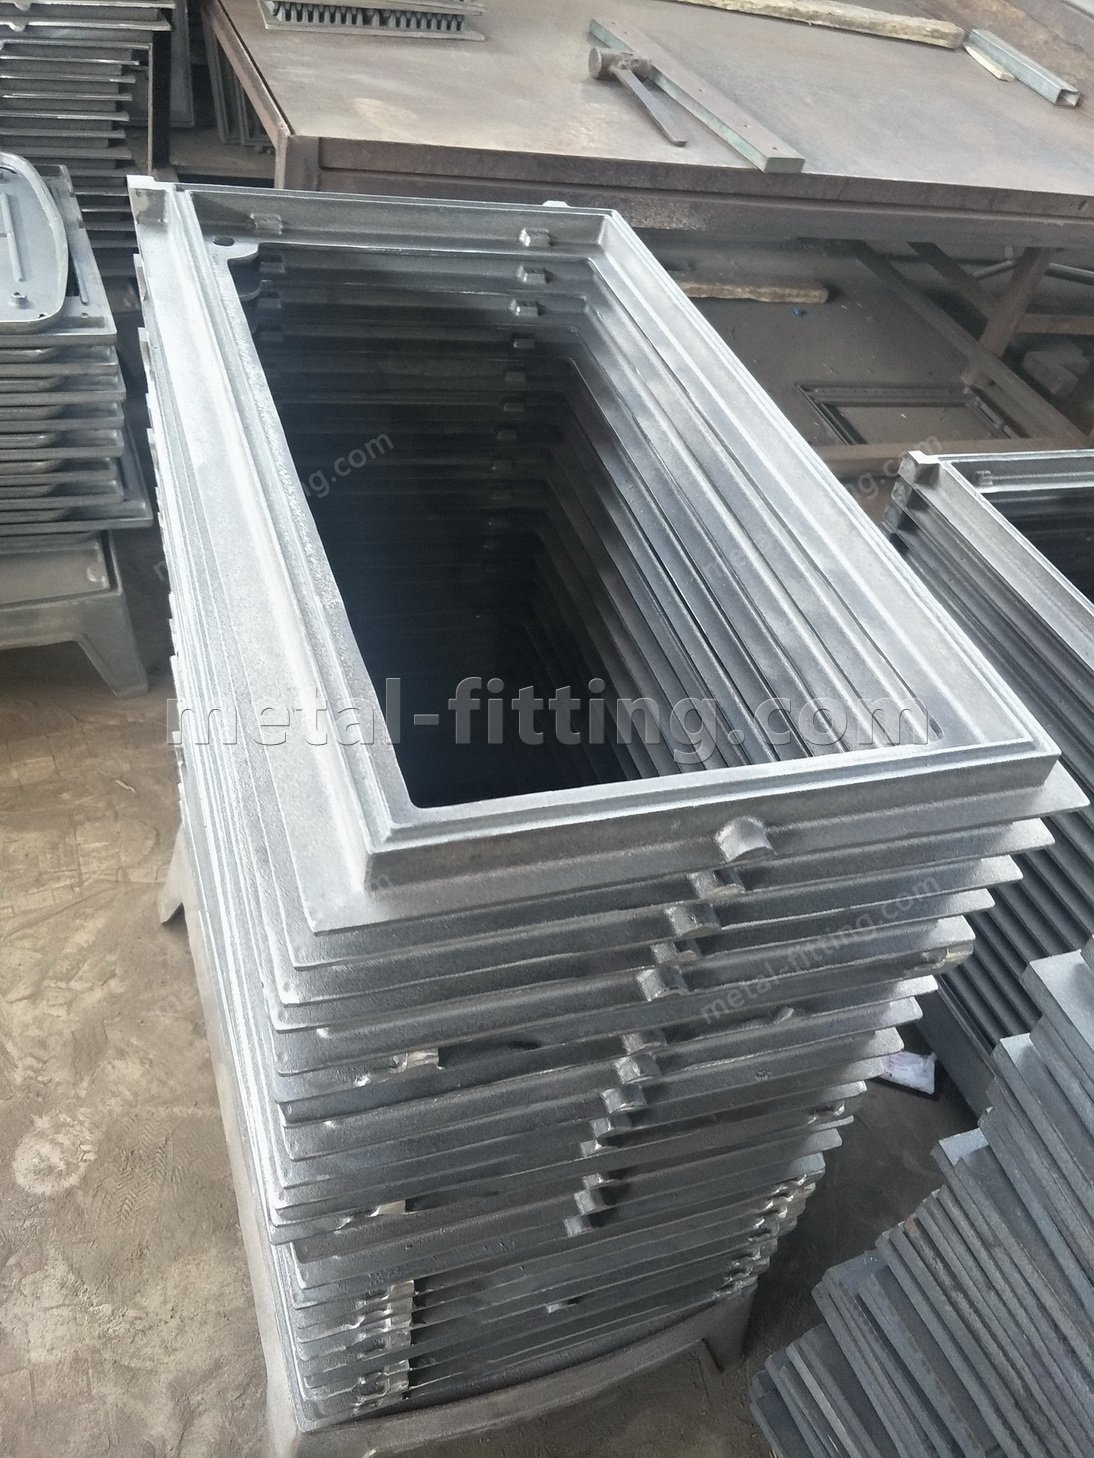 customization steel plate or other steel metal itemss-IMG20180726103021